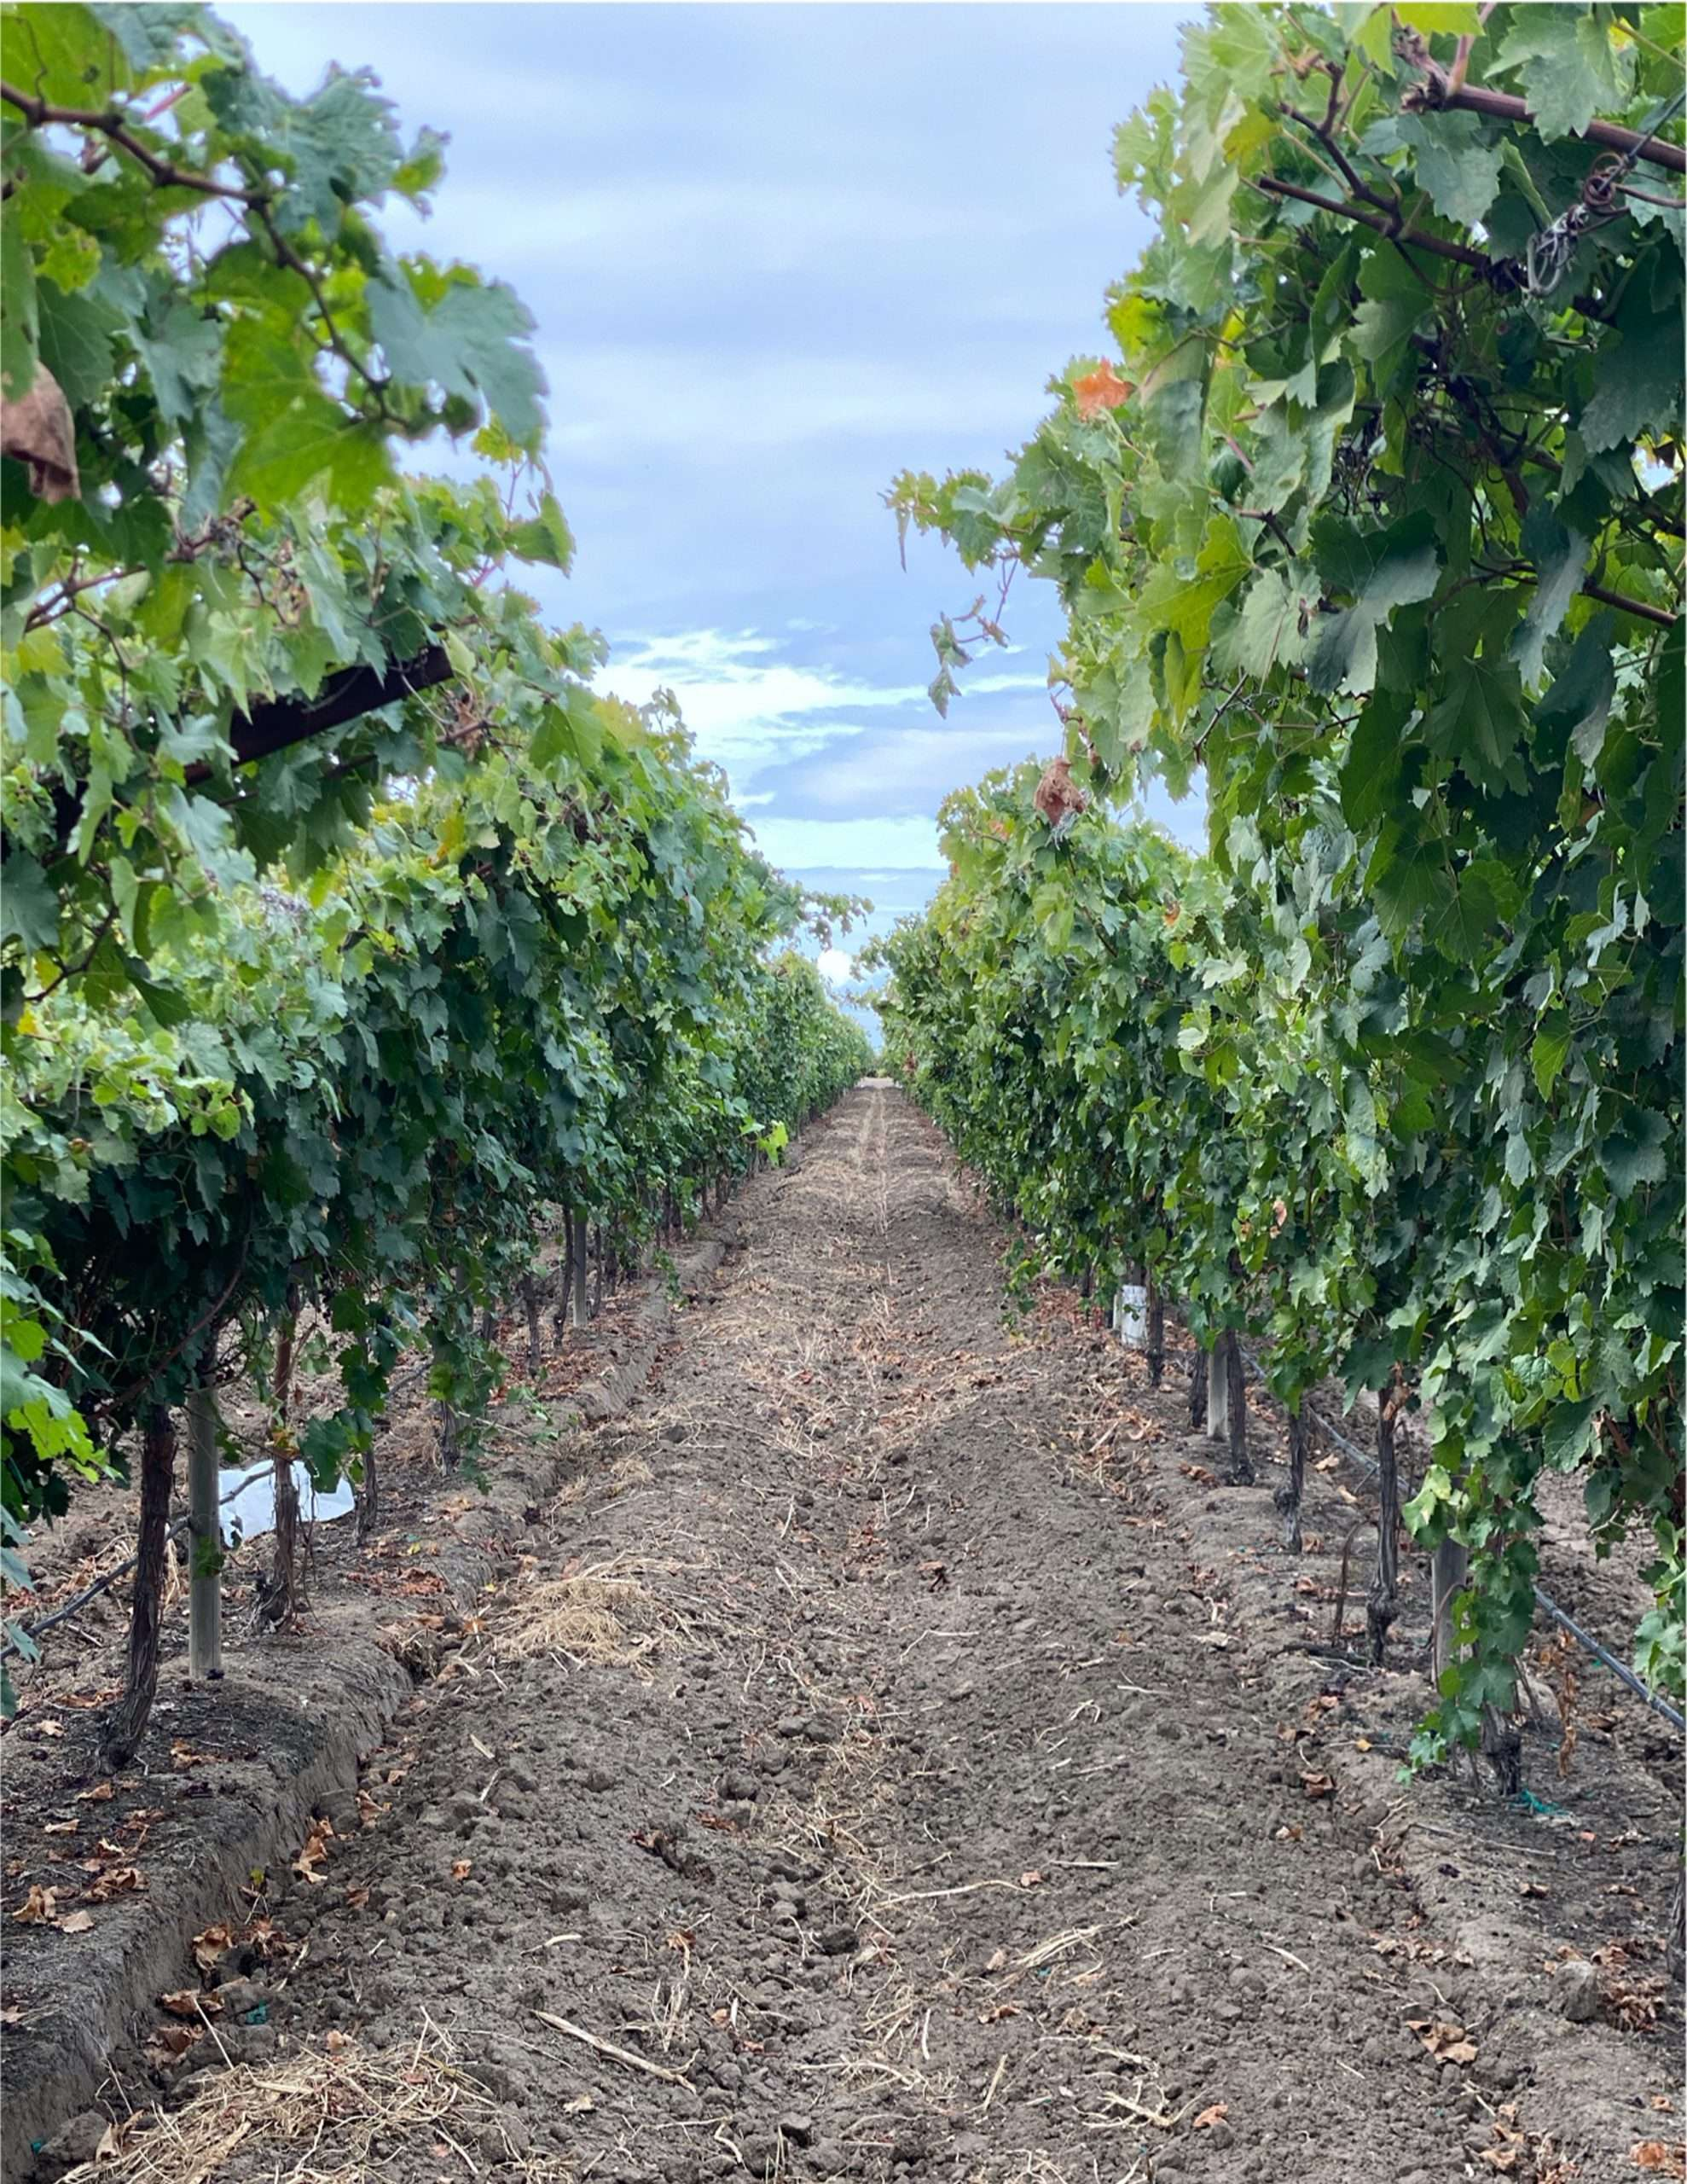 102 Acres – Table Grapes